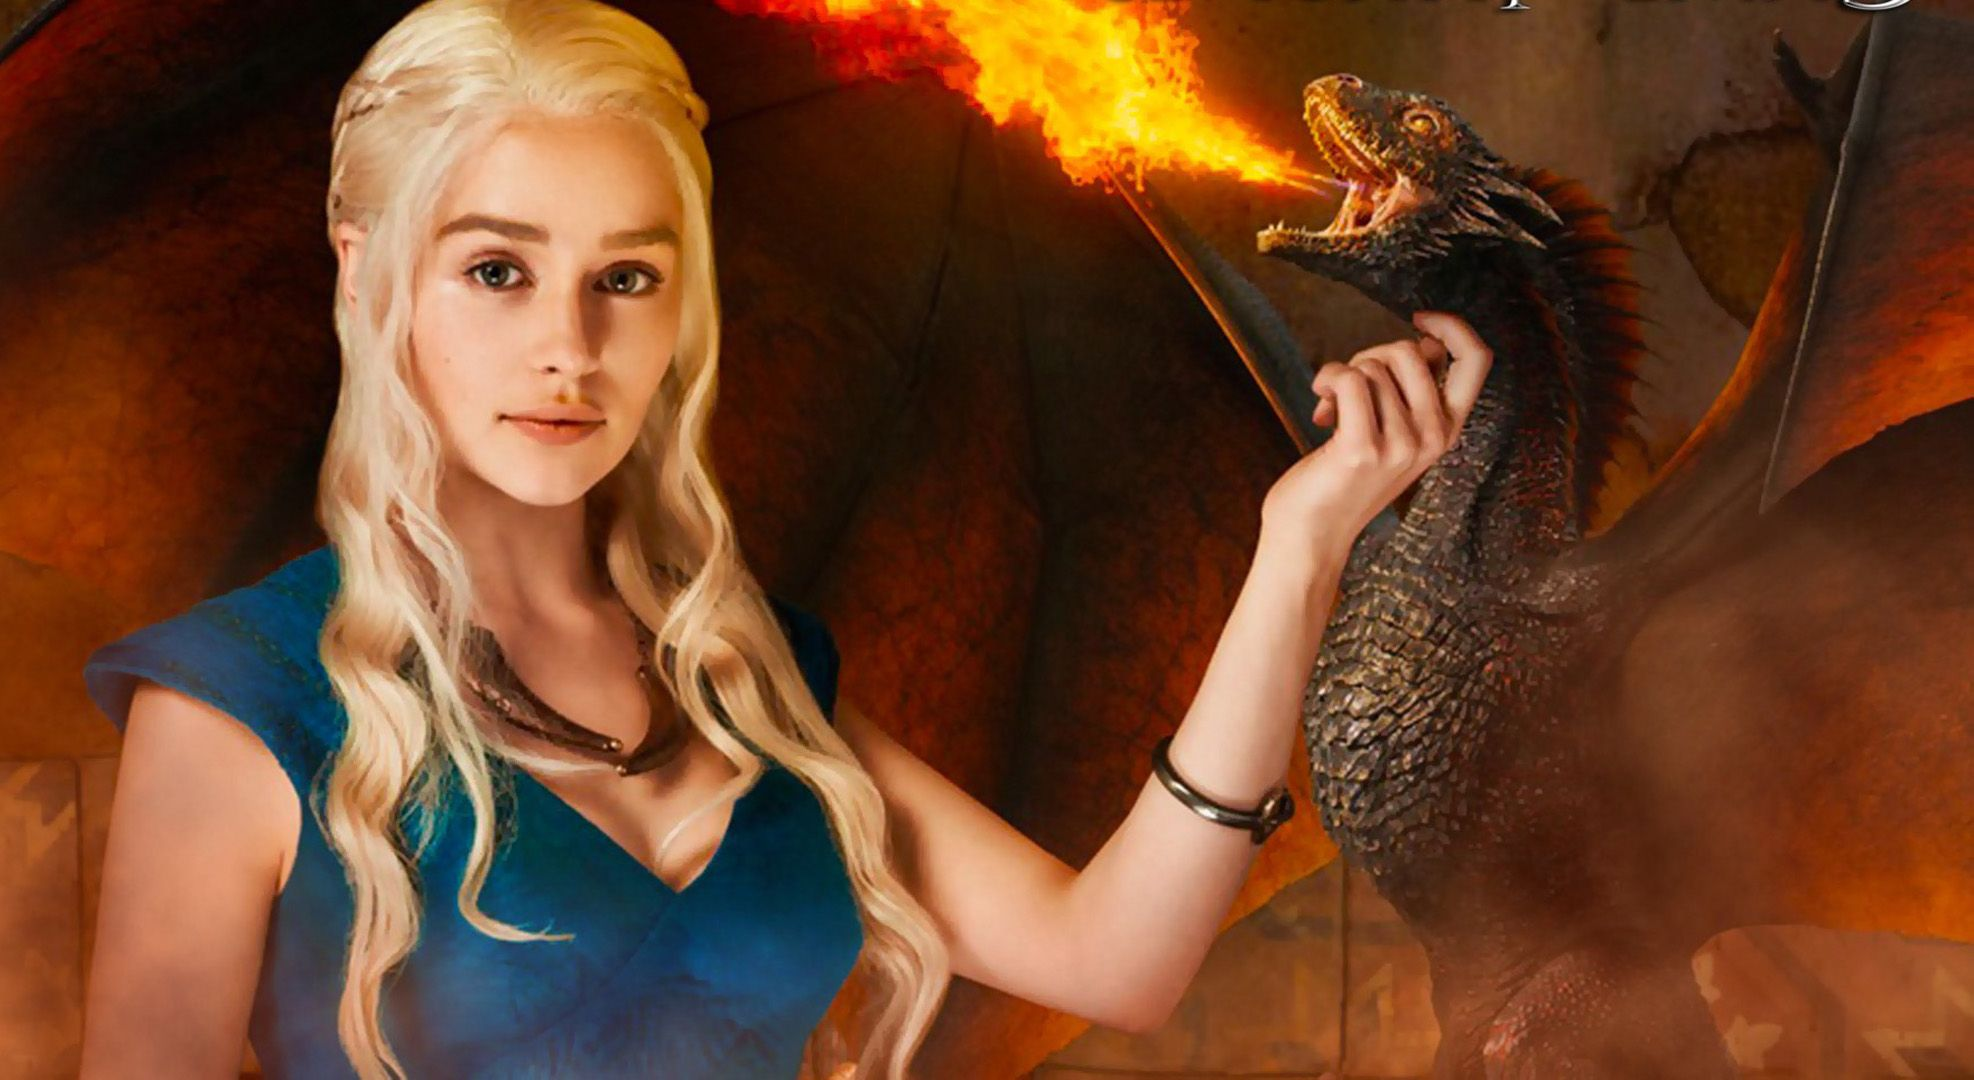 Emilia Clarke Wallpaper Game Of Thrones HD Wallpapers available 1974x1080